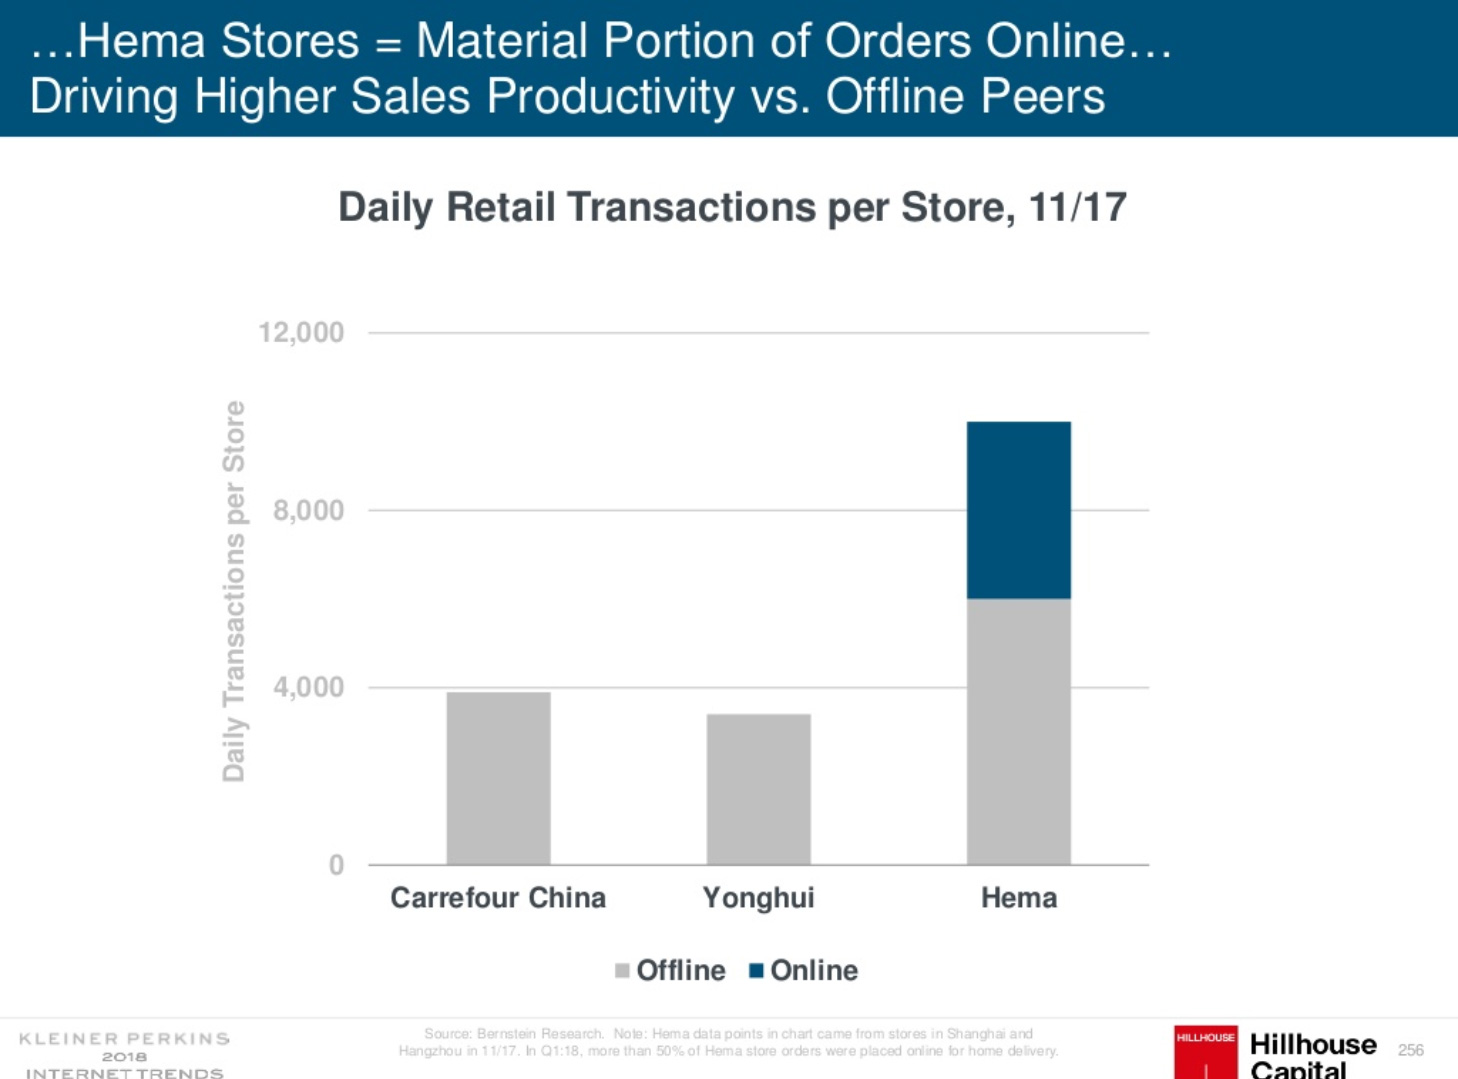 Chinese retail driving higher sales productivity